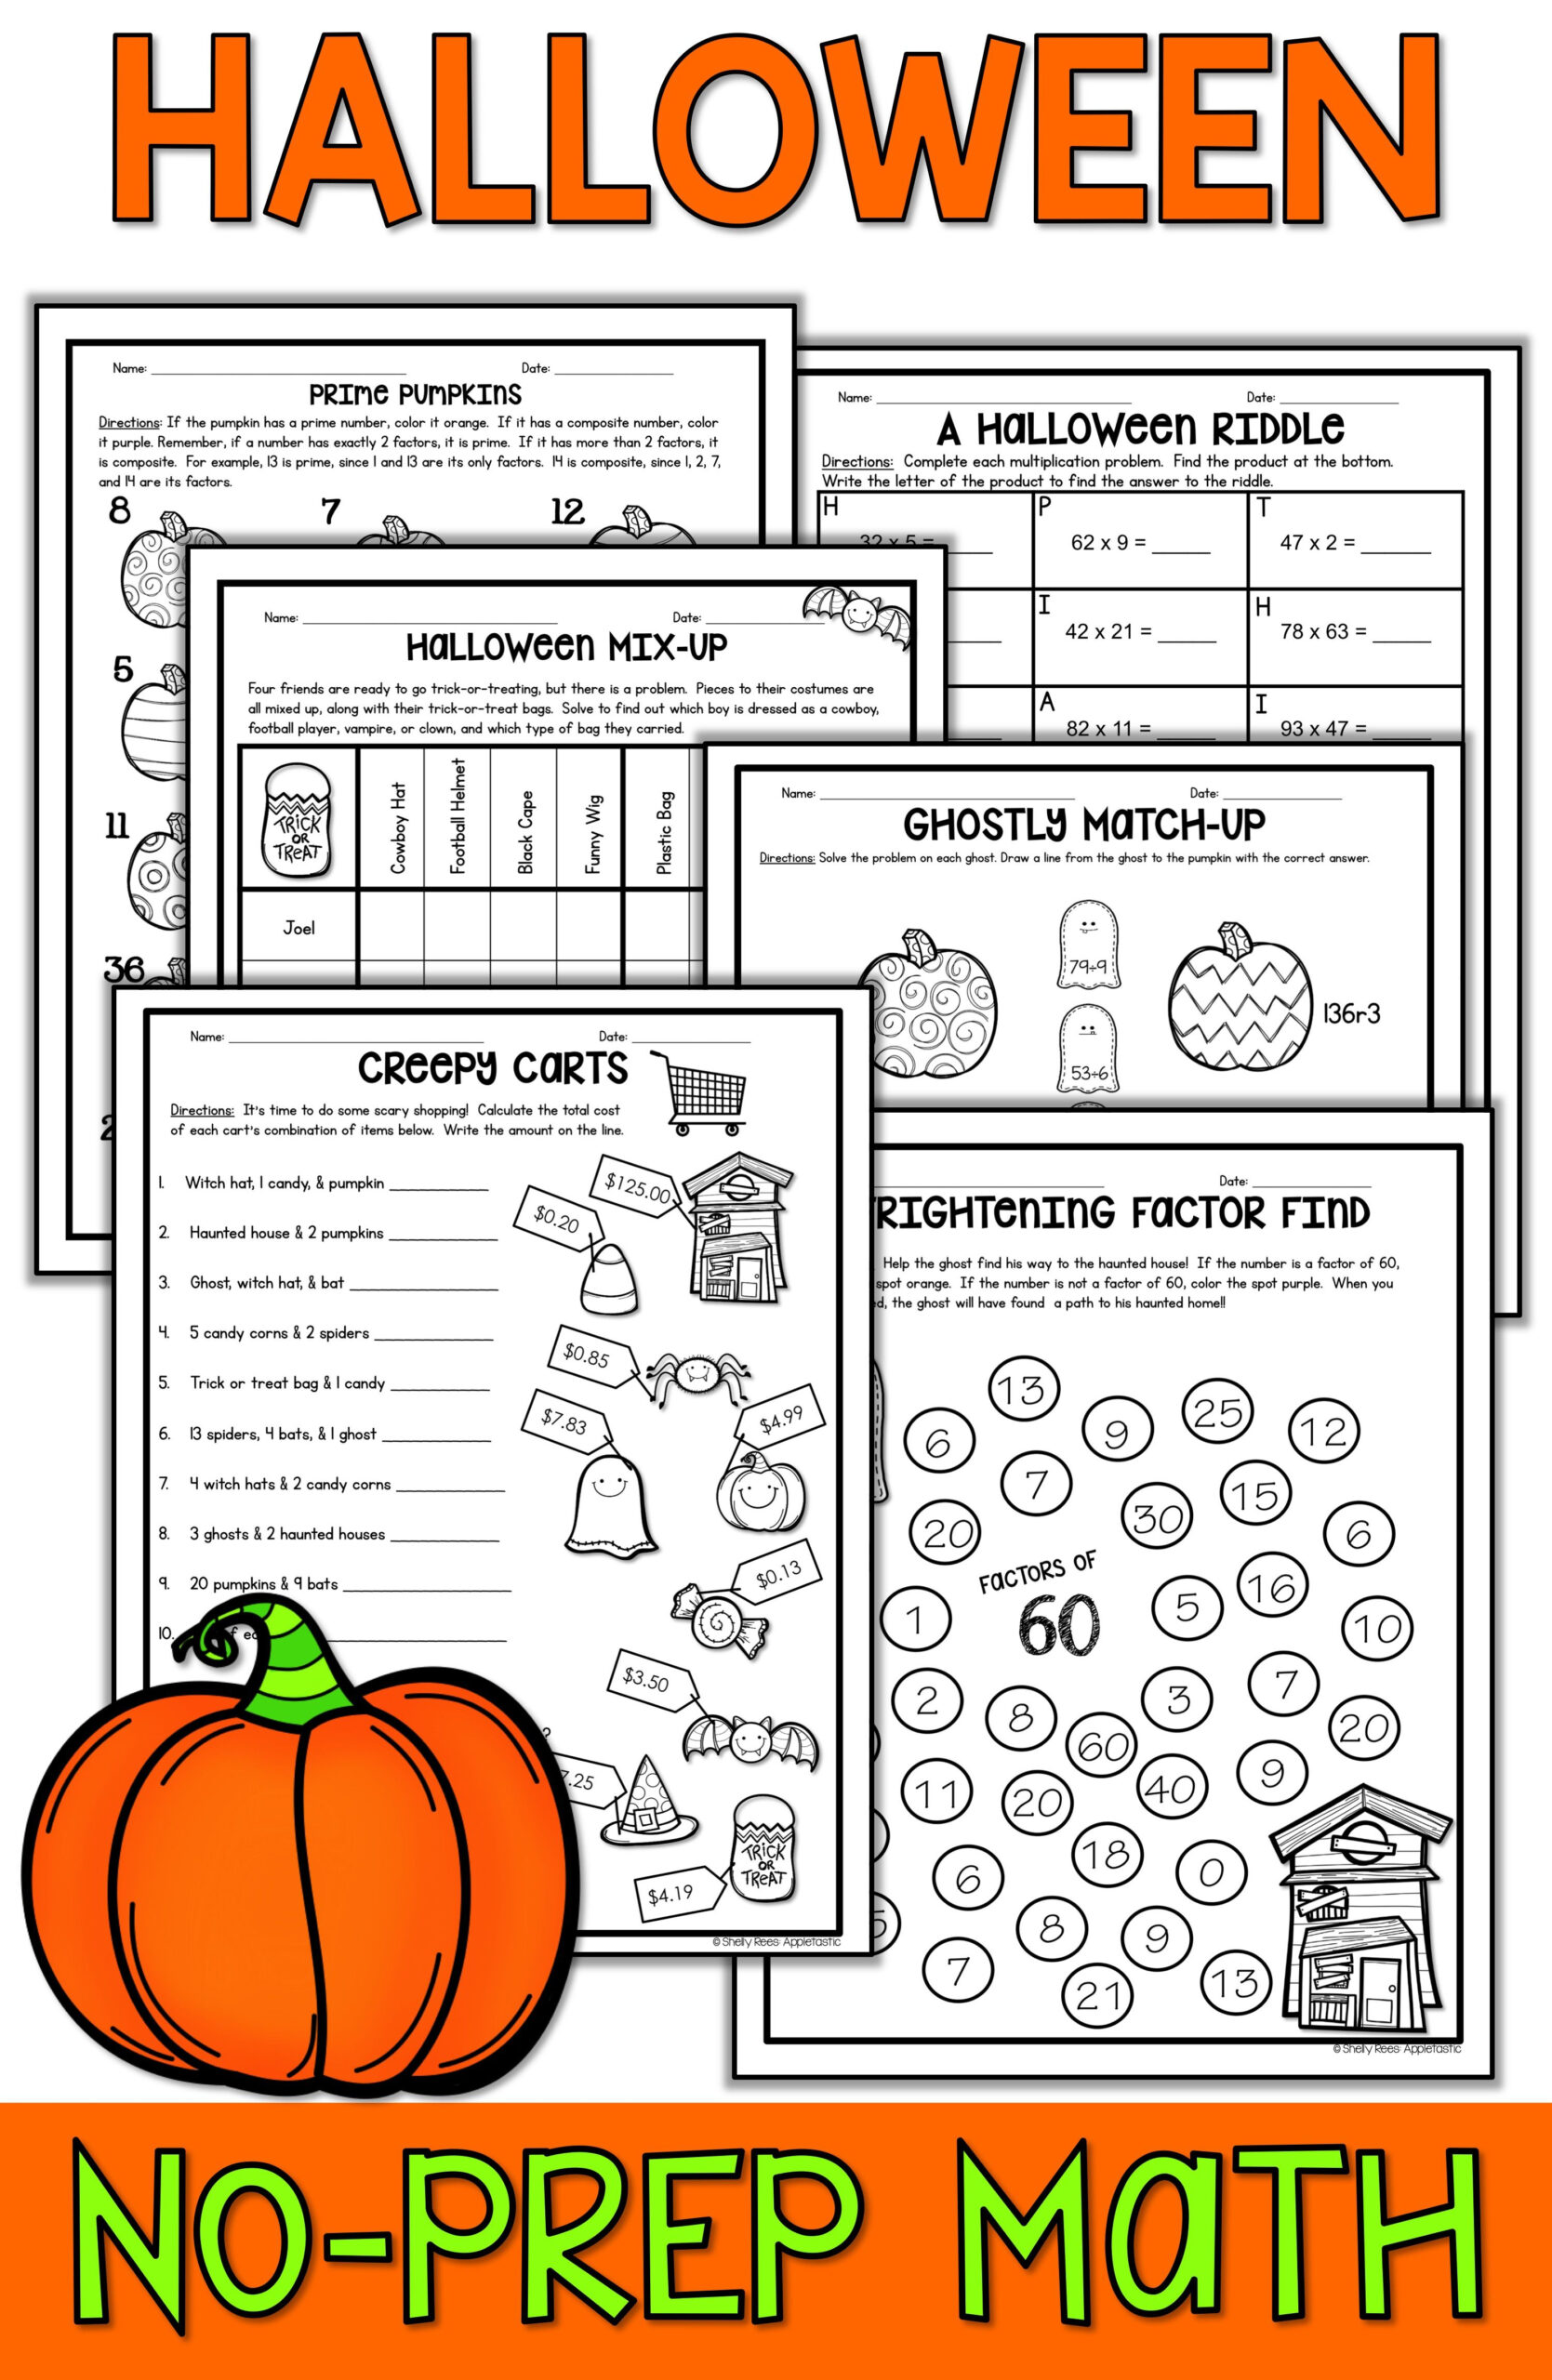 Halloween Math Worksheets | Halloween Math Worksheets, Math